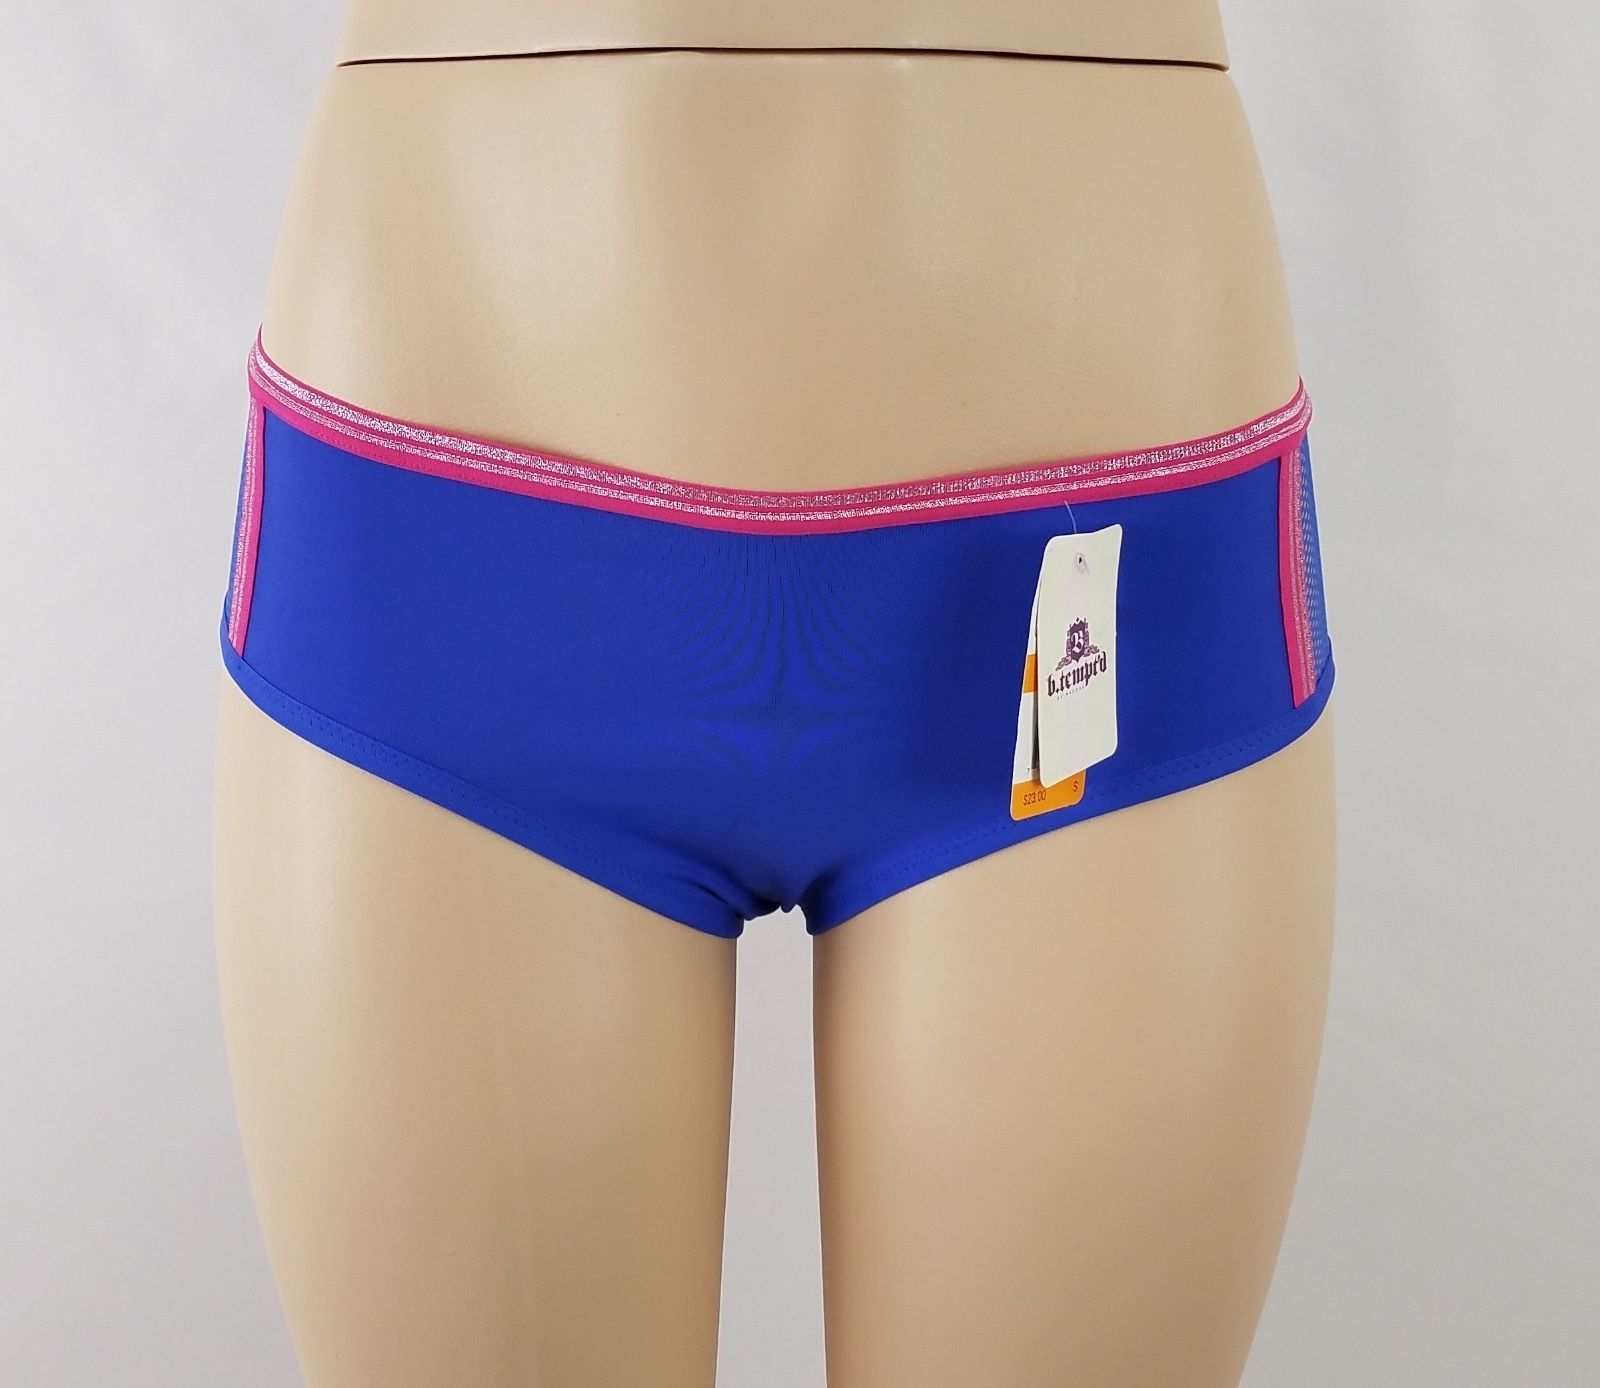 b.tempt/'d by Wacoal b.active Boy Shorts Panty 945210 Blue